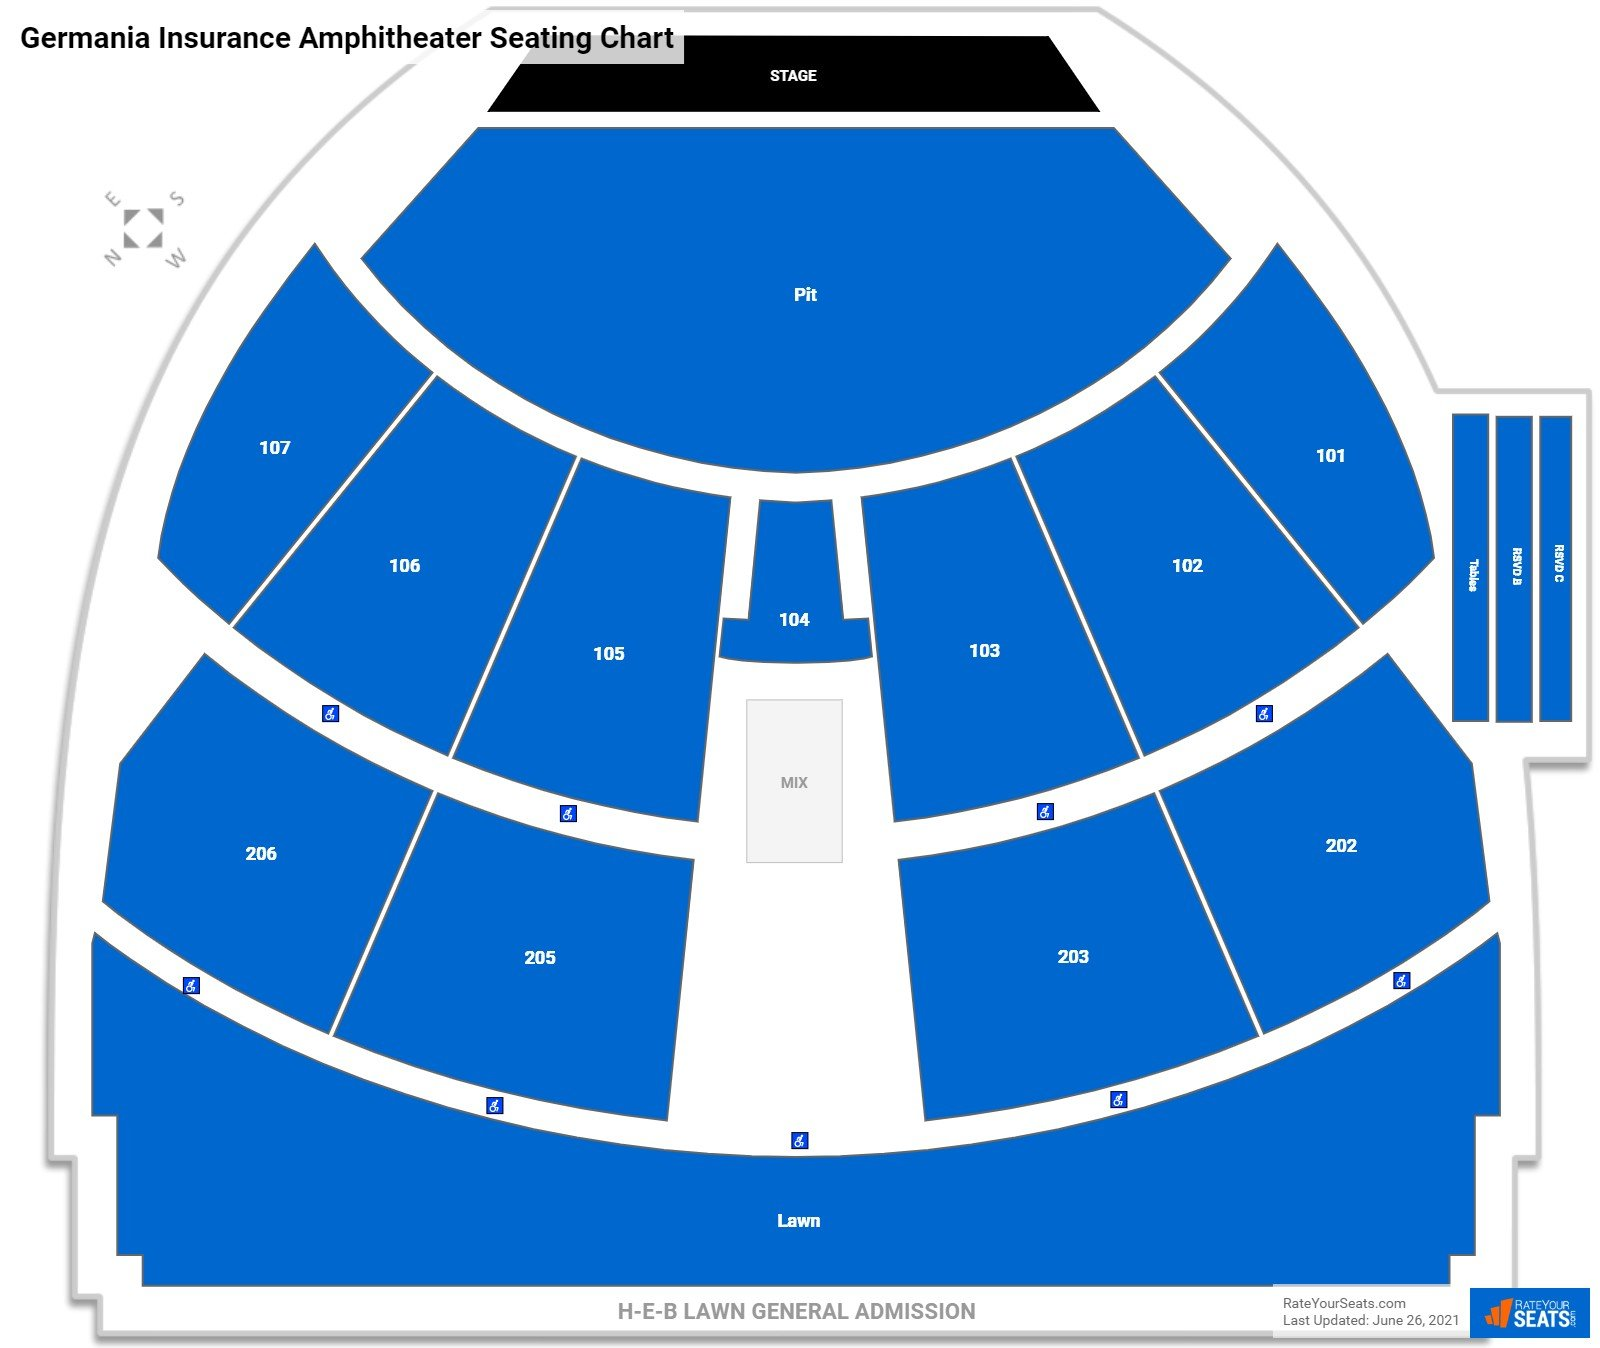 Germania Insurance Amphitheater Seating Chart